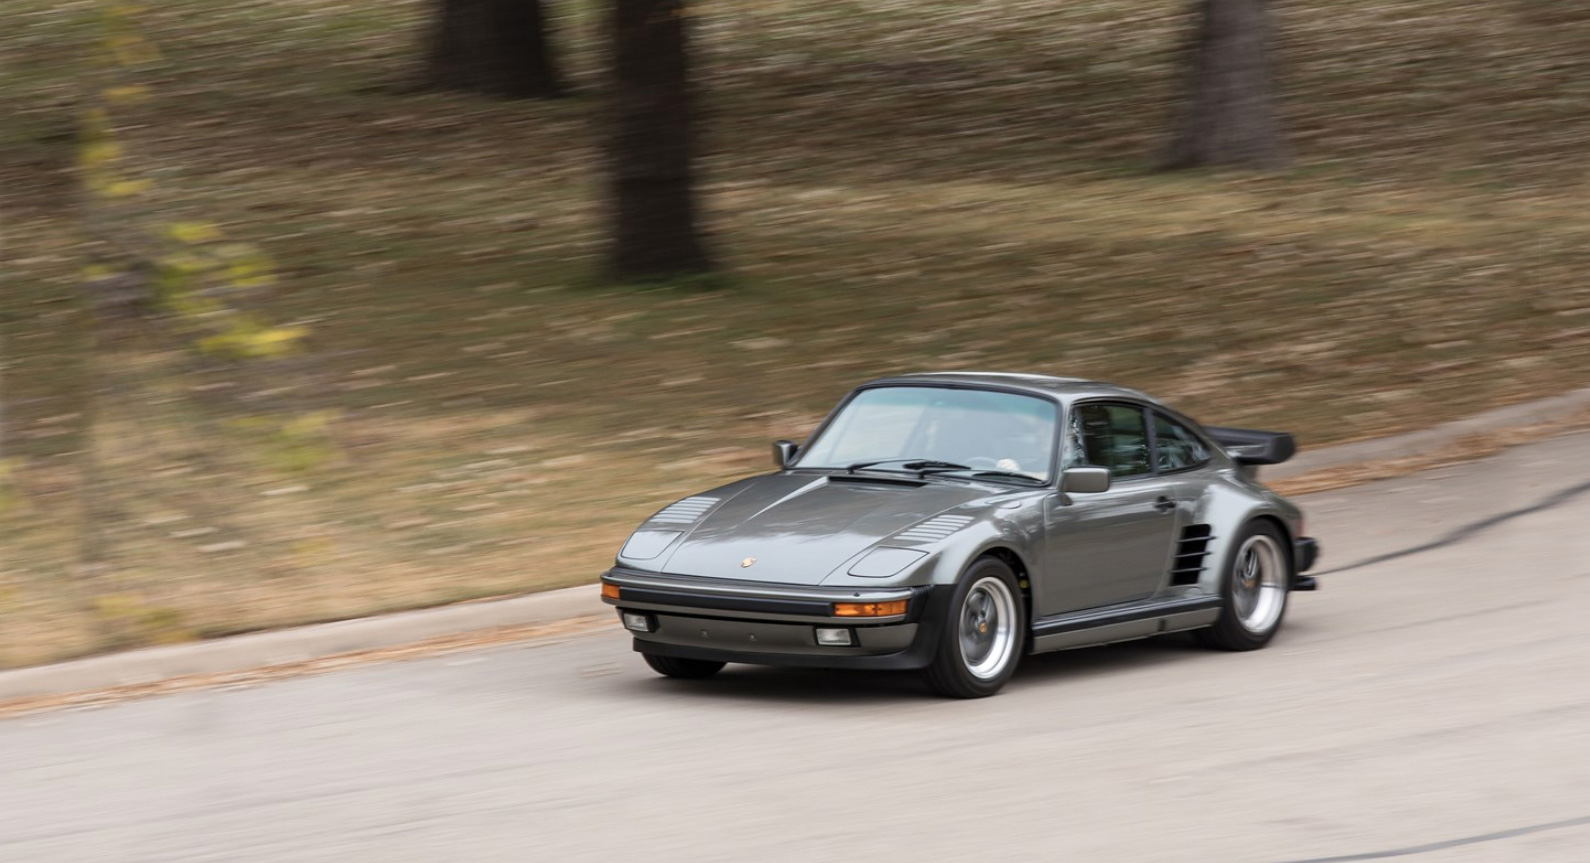 This Rare 1988 Porsche 'Flat Nose' Turbo Could Sell For Over $200,000